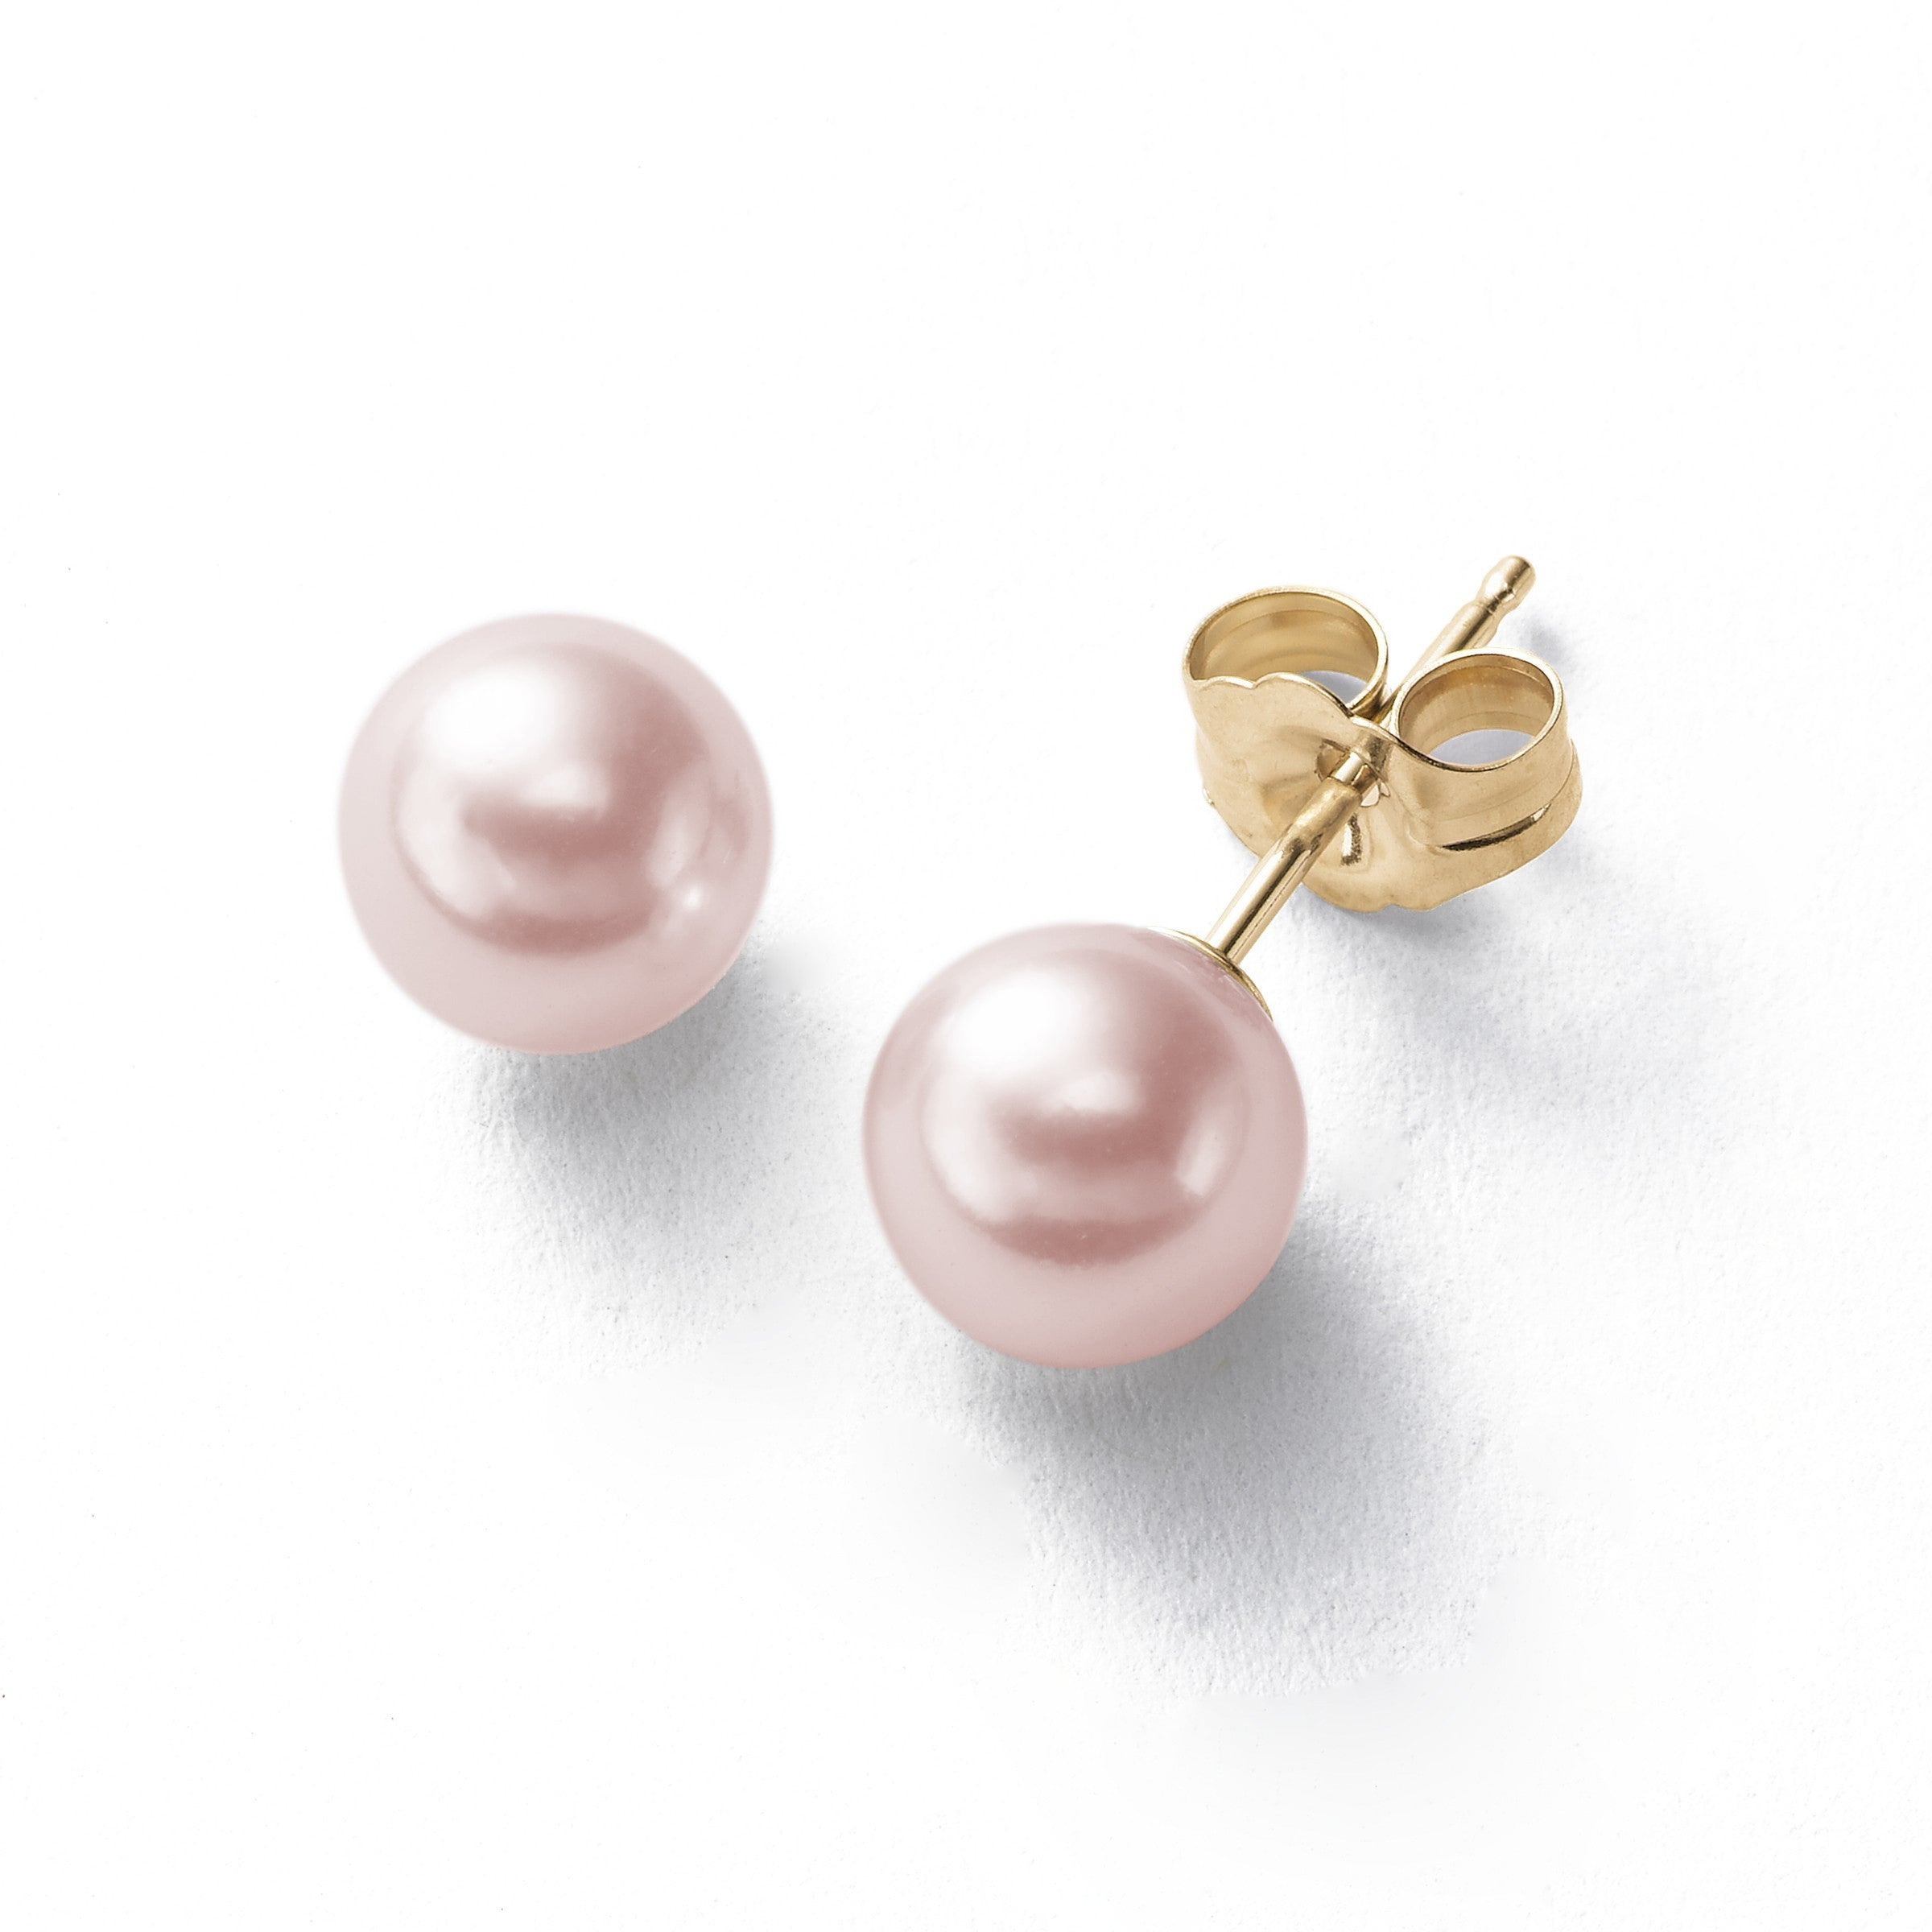 Dyed Pink Freshwater Cultured Pearl Earrings, 10.5-11.5 MM, 14K Yellow Gold